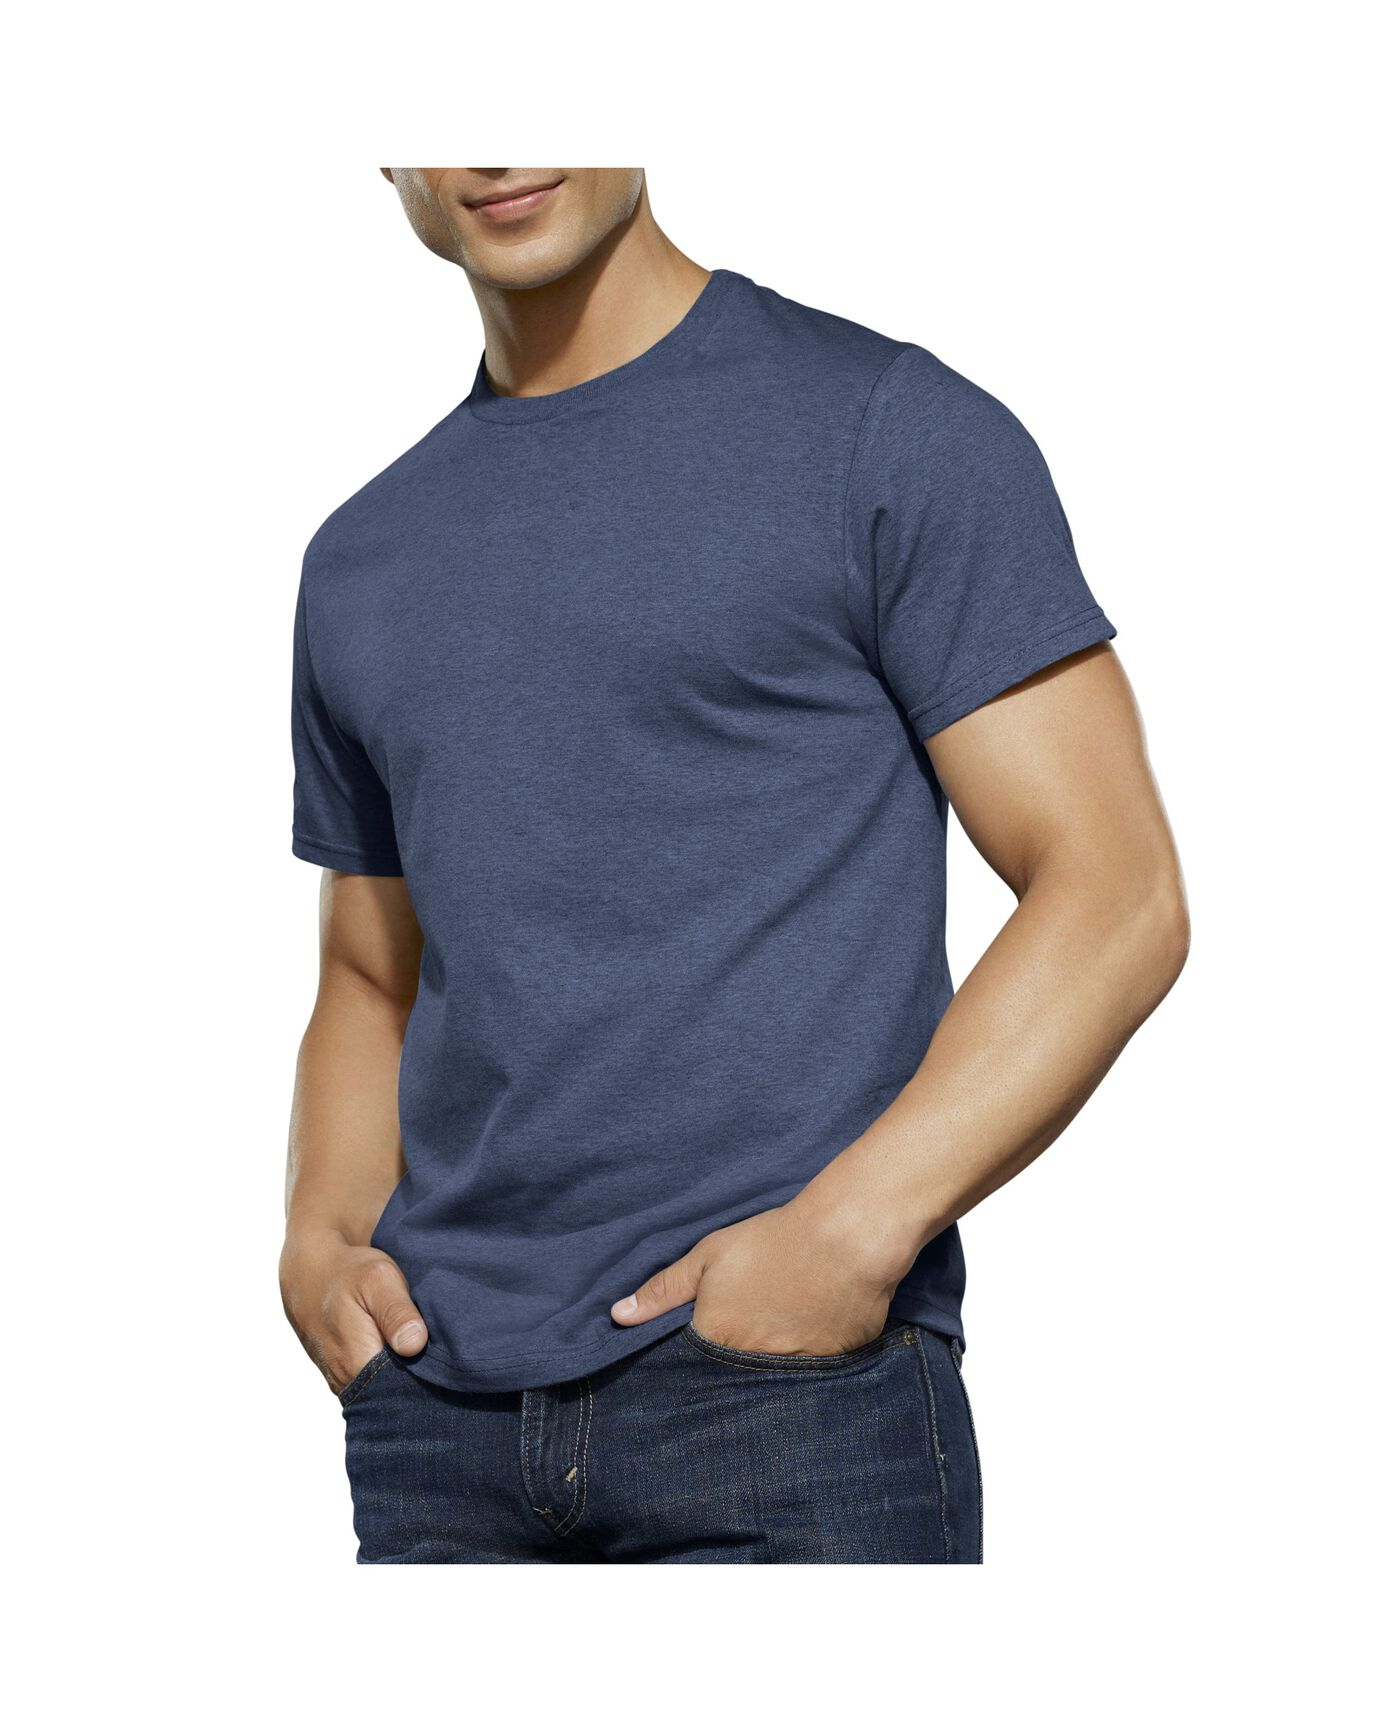 ebe9206c763 ... Men s 4 Pack Assorted Color Crew T-Shirt Assorted ...